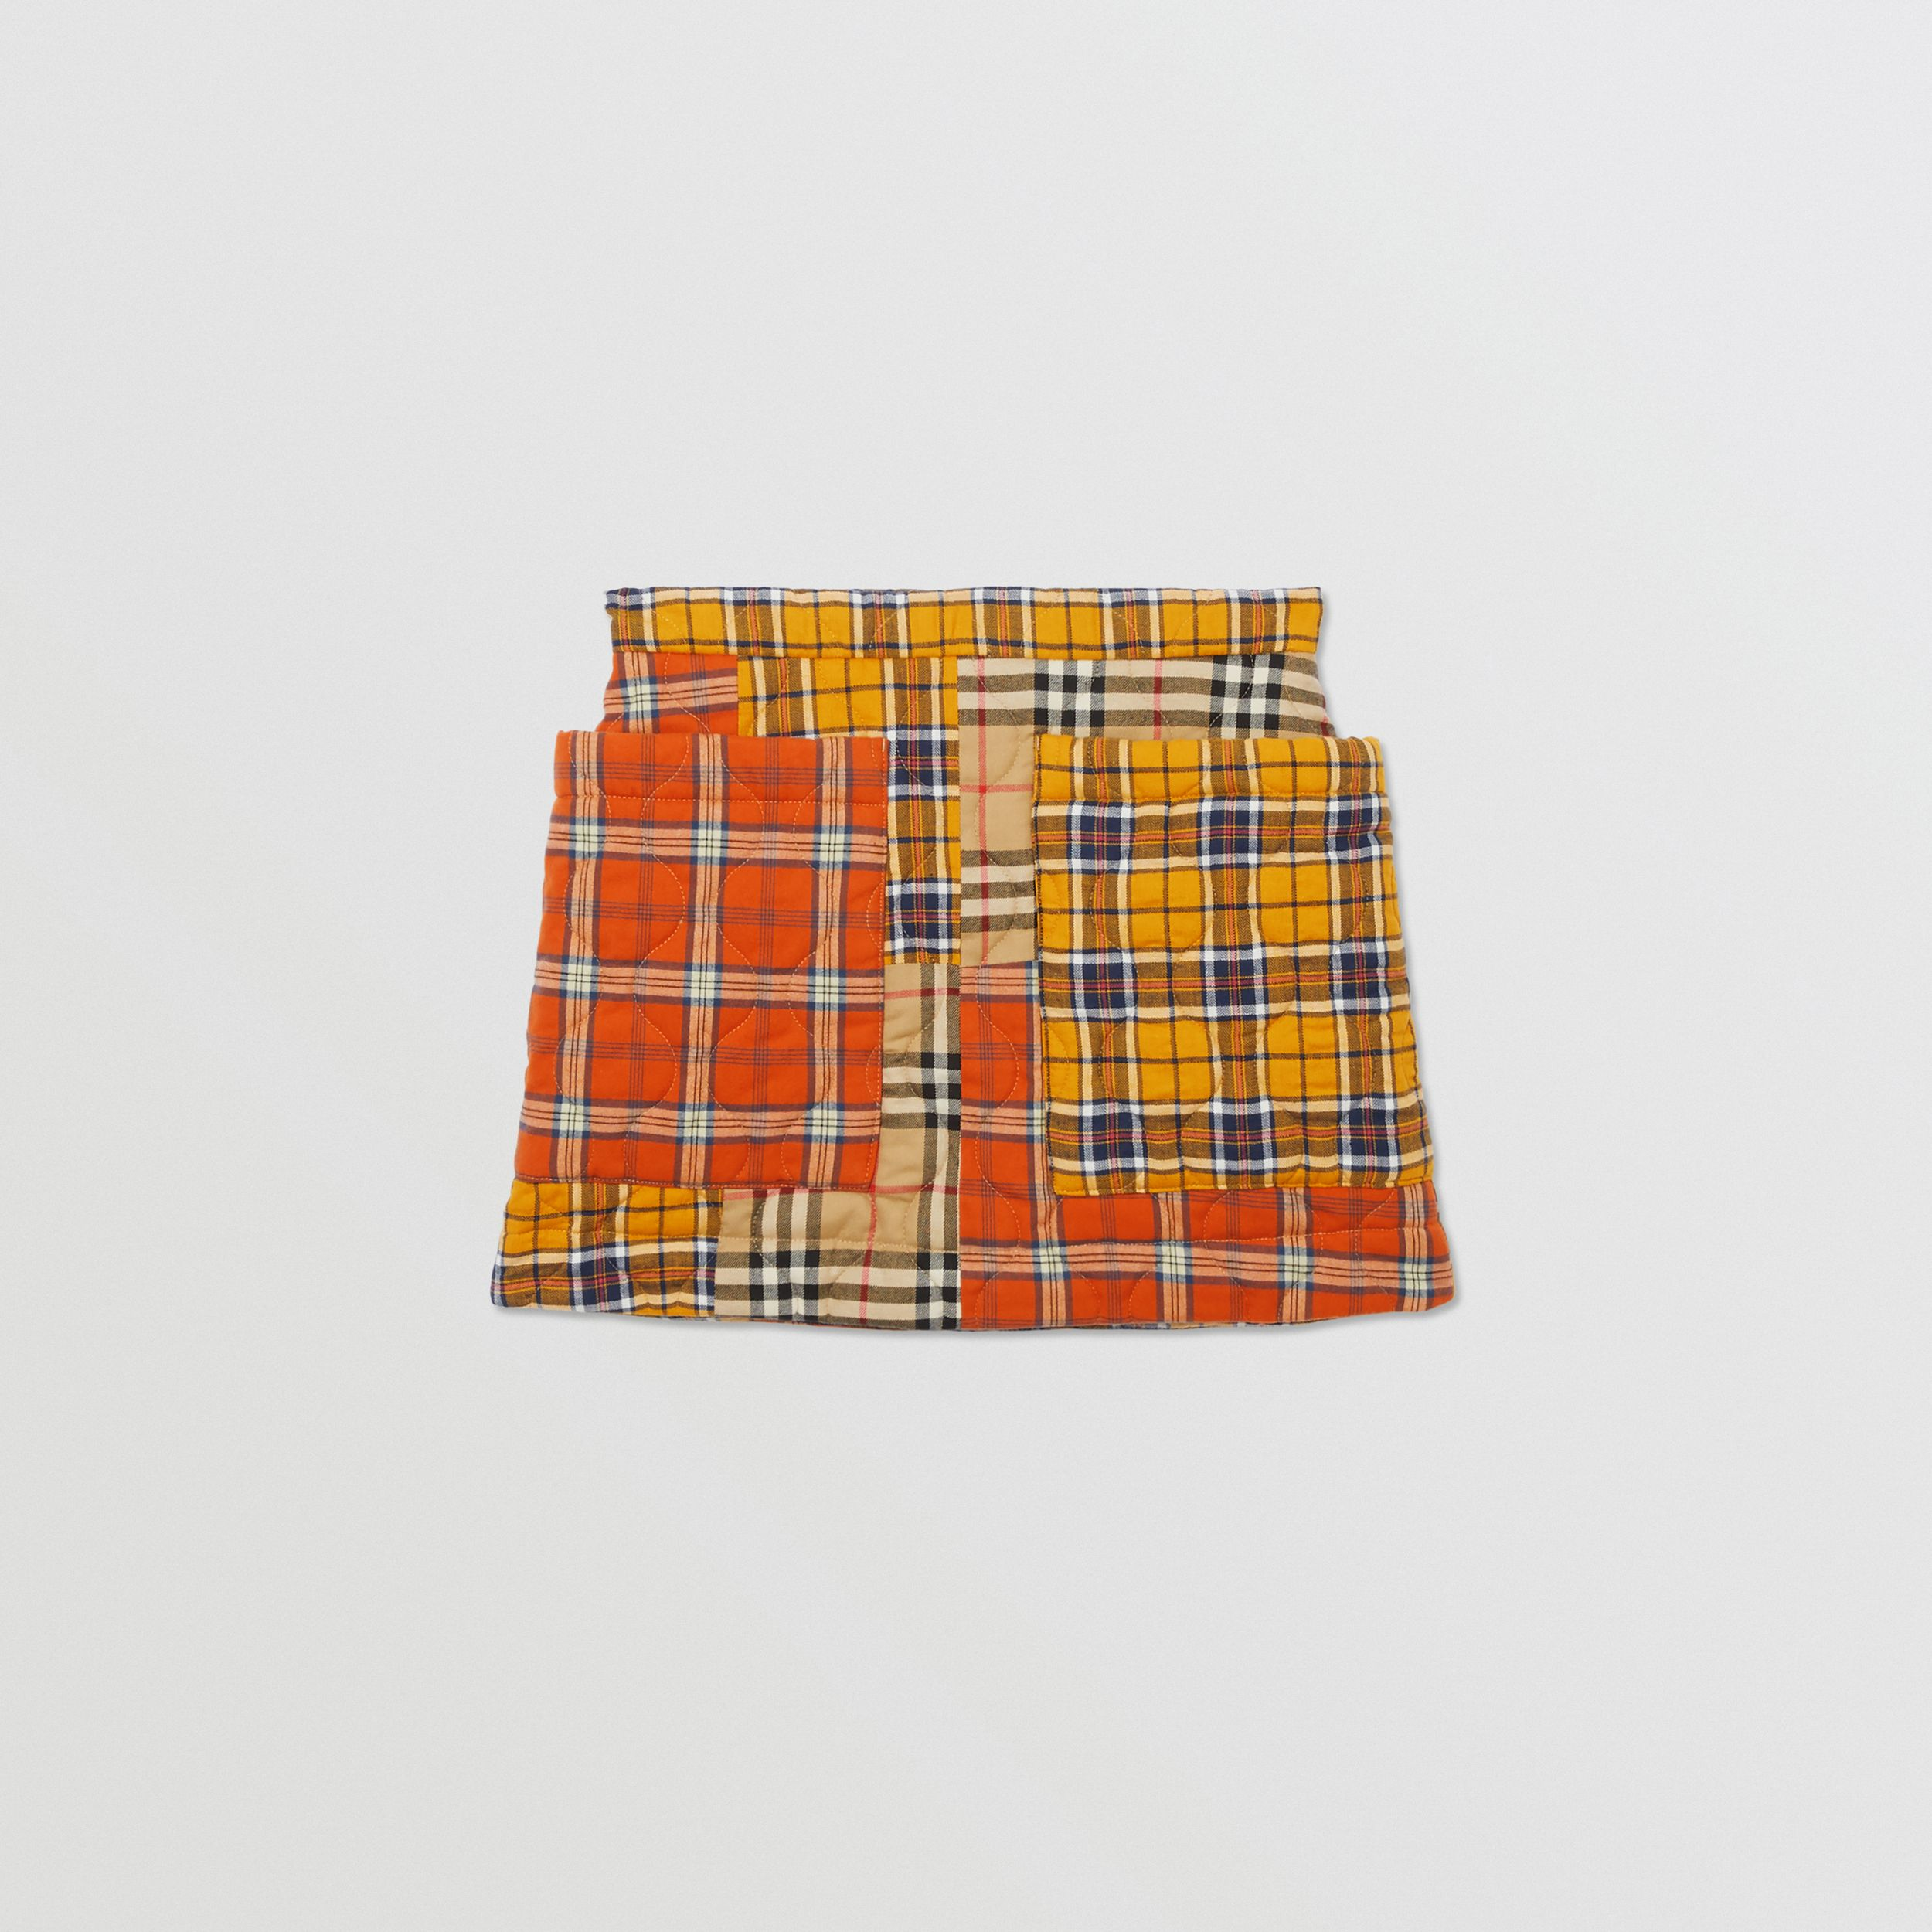 Patchwork Check Cotton Flannel Skirt in Souwester Yellow | Burberry - 1